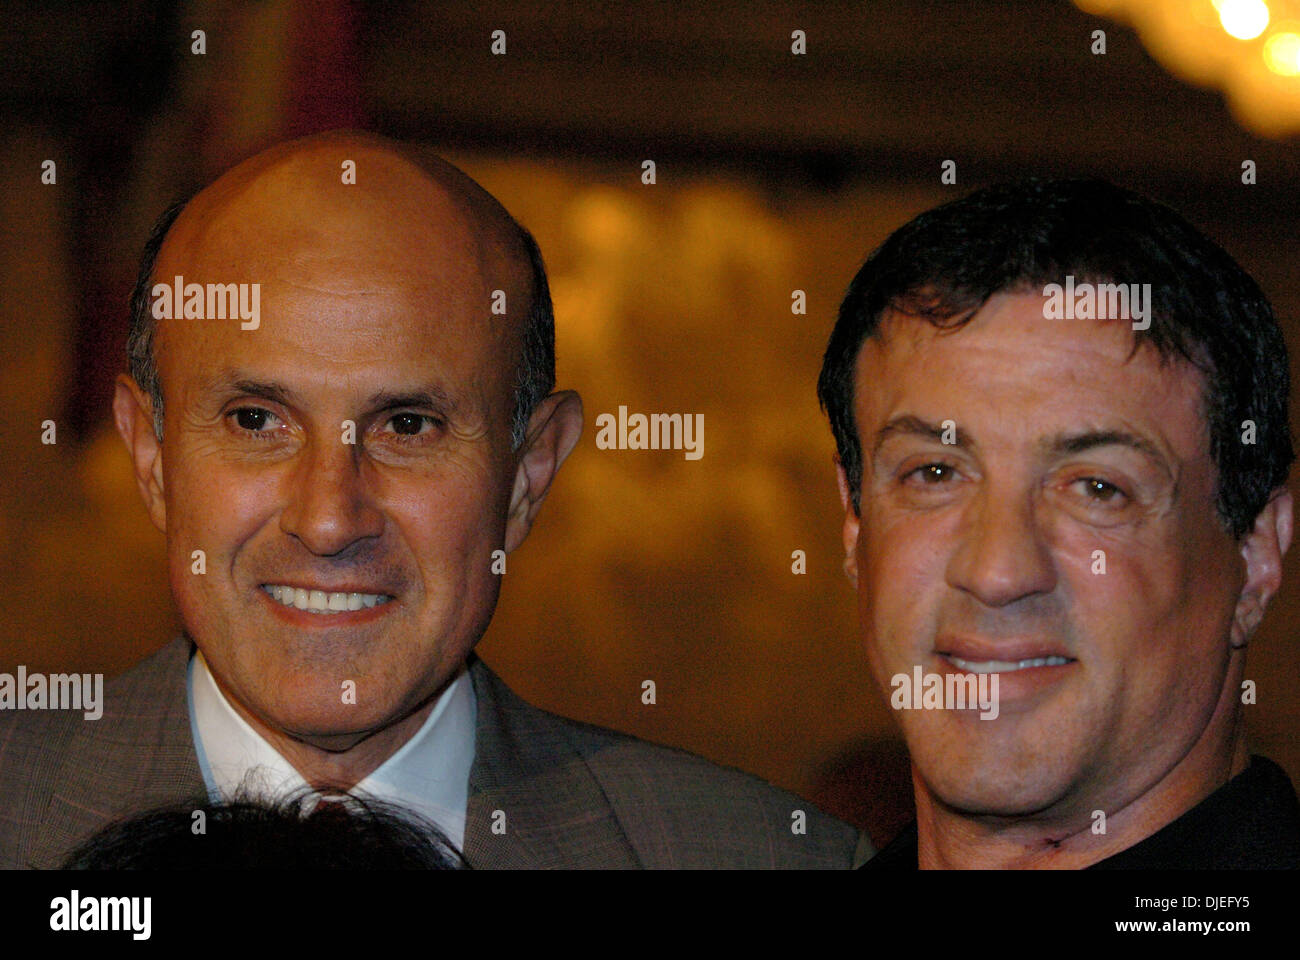 Oct 16, 2004; Commerce, CA, USA; LA County Sherrif LEE BACA shares a laugh with actor SYLVESTER STALLONE at The 25th Annual World Boxing Hall of Fame Banquet held at The Commerce Casino. - Stock Image